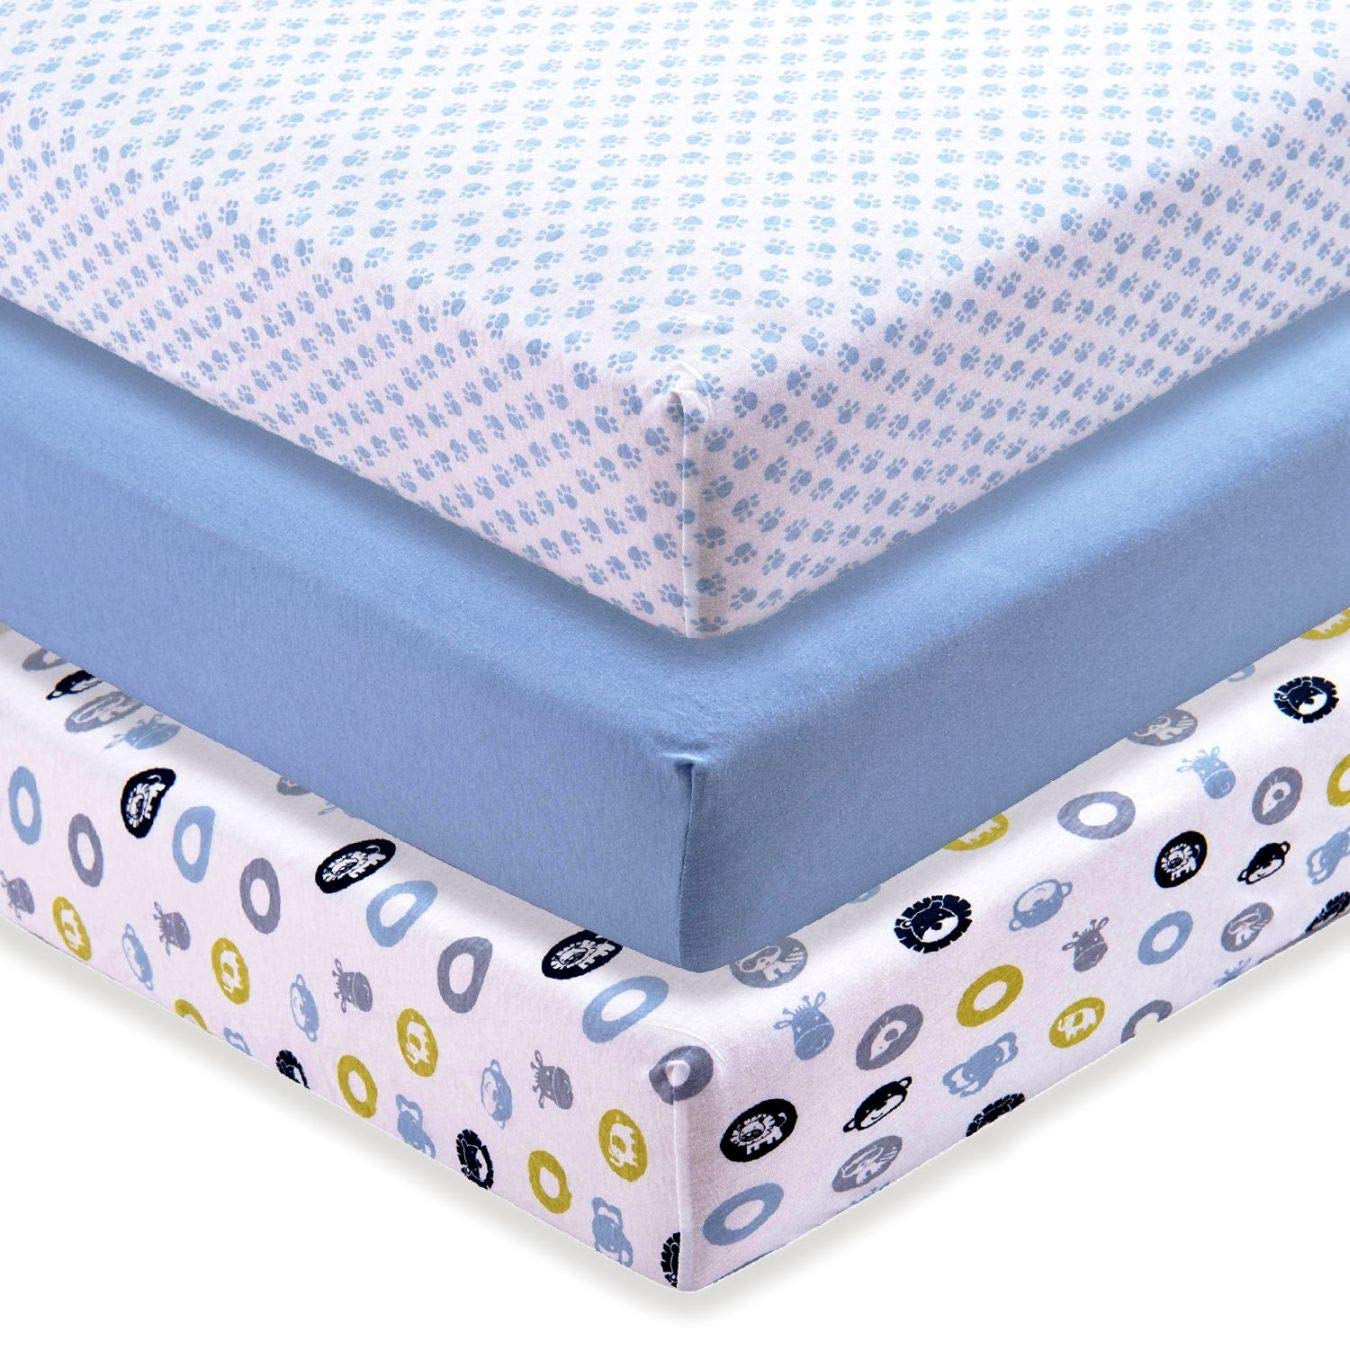 M&Y Crib Sheets Boys (3-Pack) | Ultra-Soft 100% Jersey Knit Cotton | for Standard Crib, Toddler Mattress (52x28x9 inch)